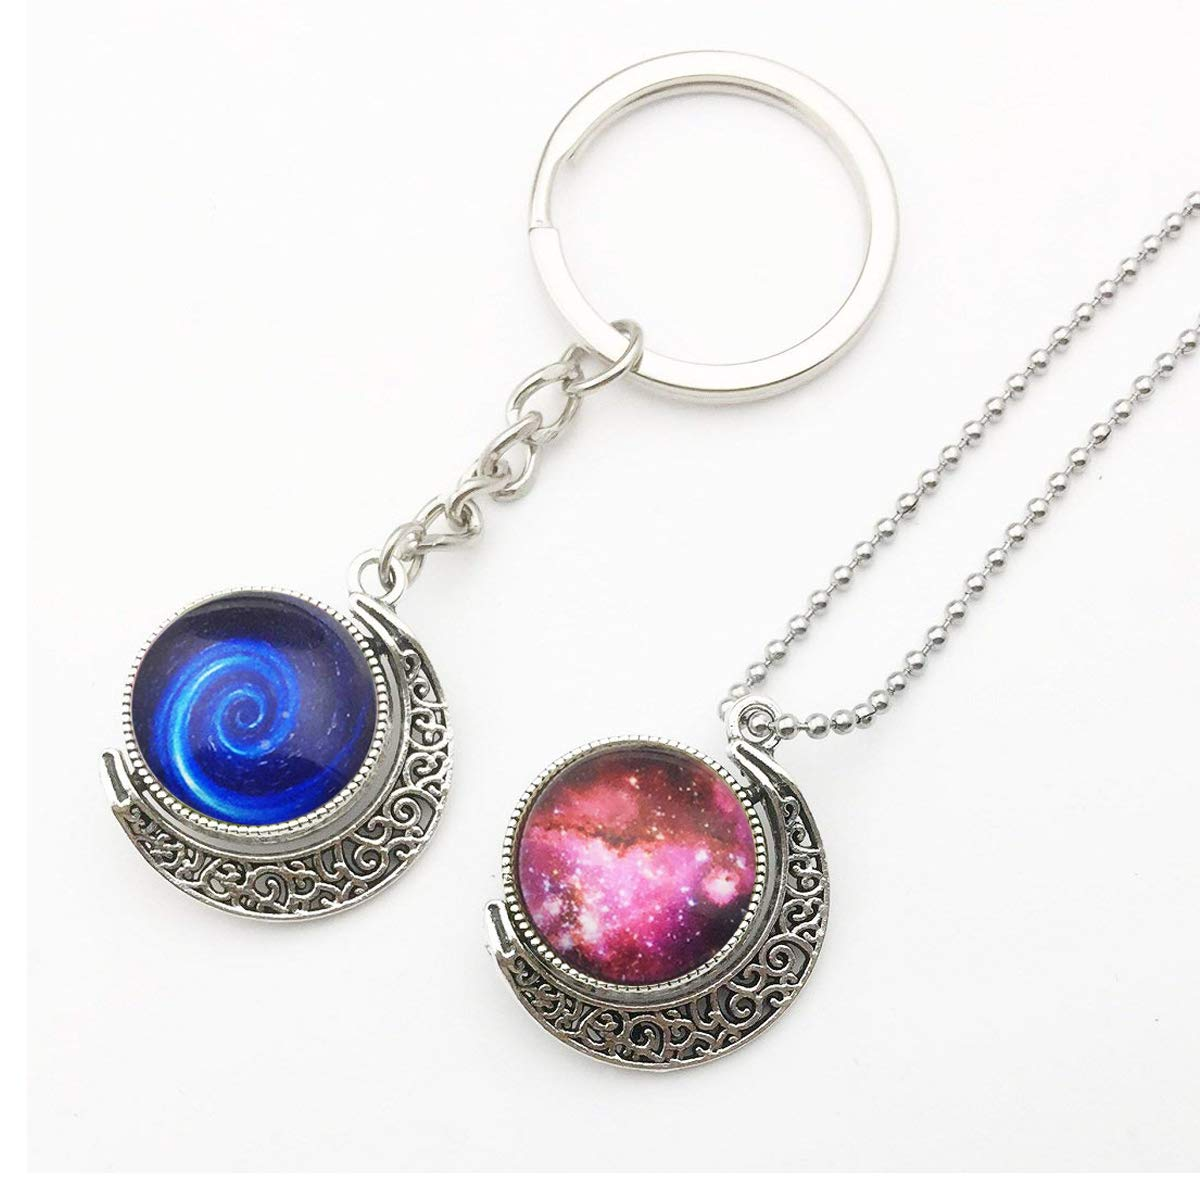 12 PCS Moon Rotation Double Side Round Blank Bezel Pendant Trays 20 PCS Glass Dome Tiles Clear Cameo and 10 PCS Pendant Buckle for Jewelry Making 25mm Pendant Trays Kit